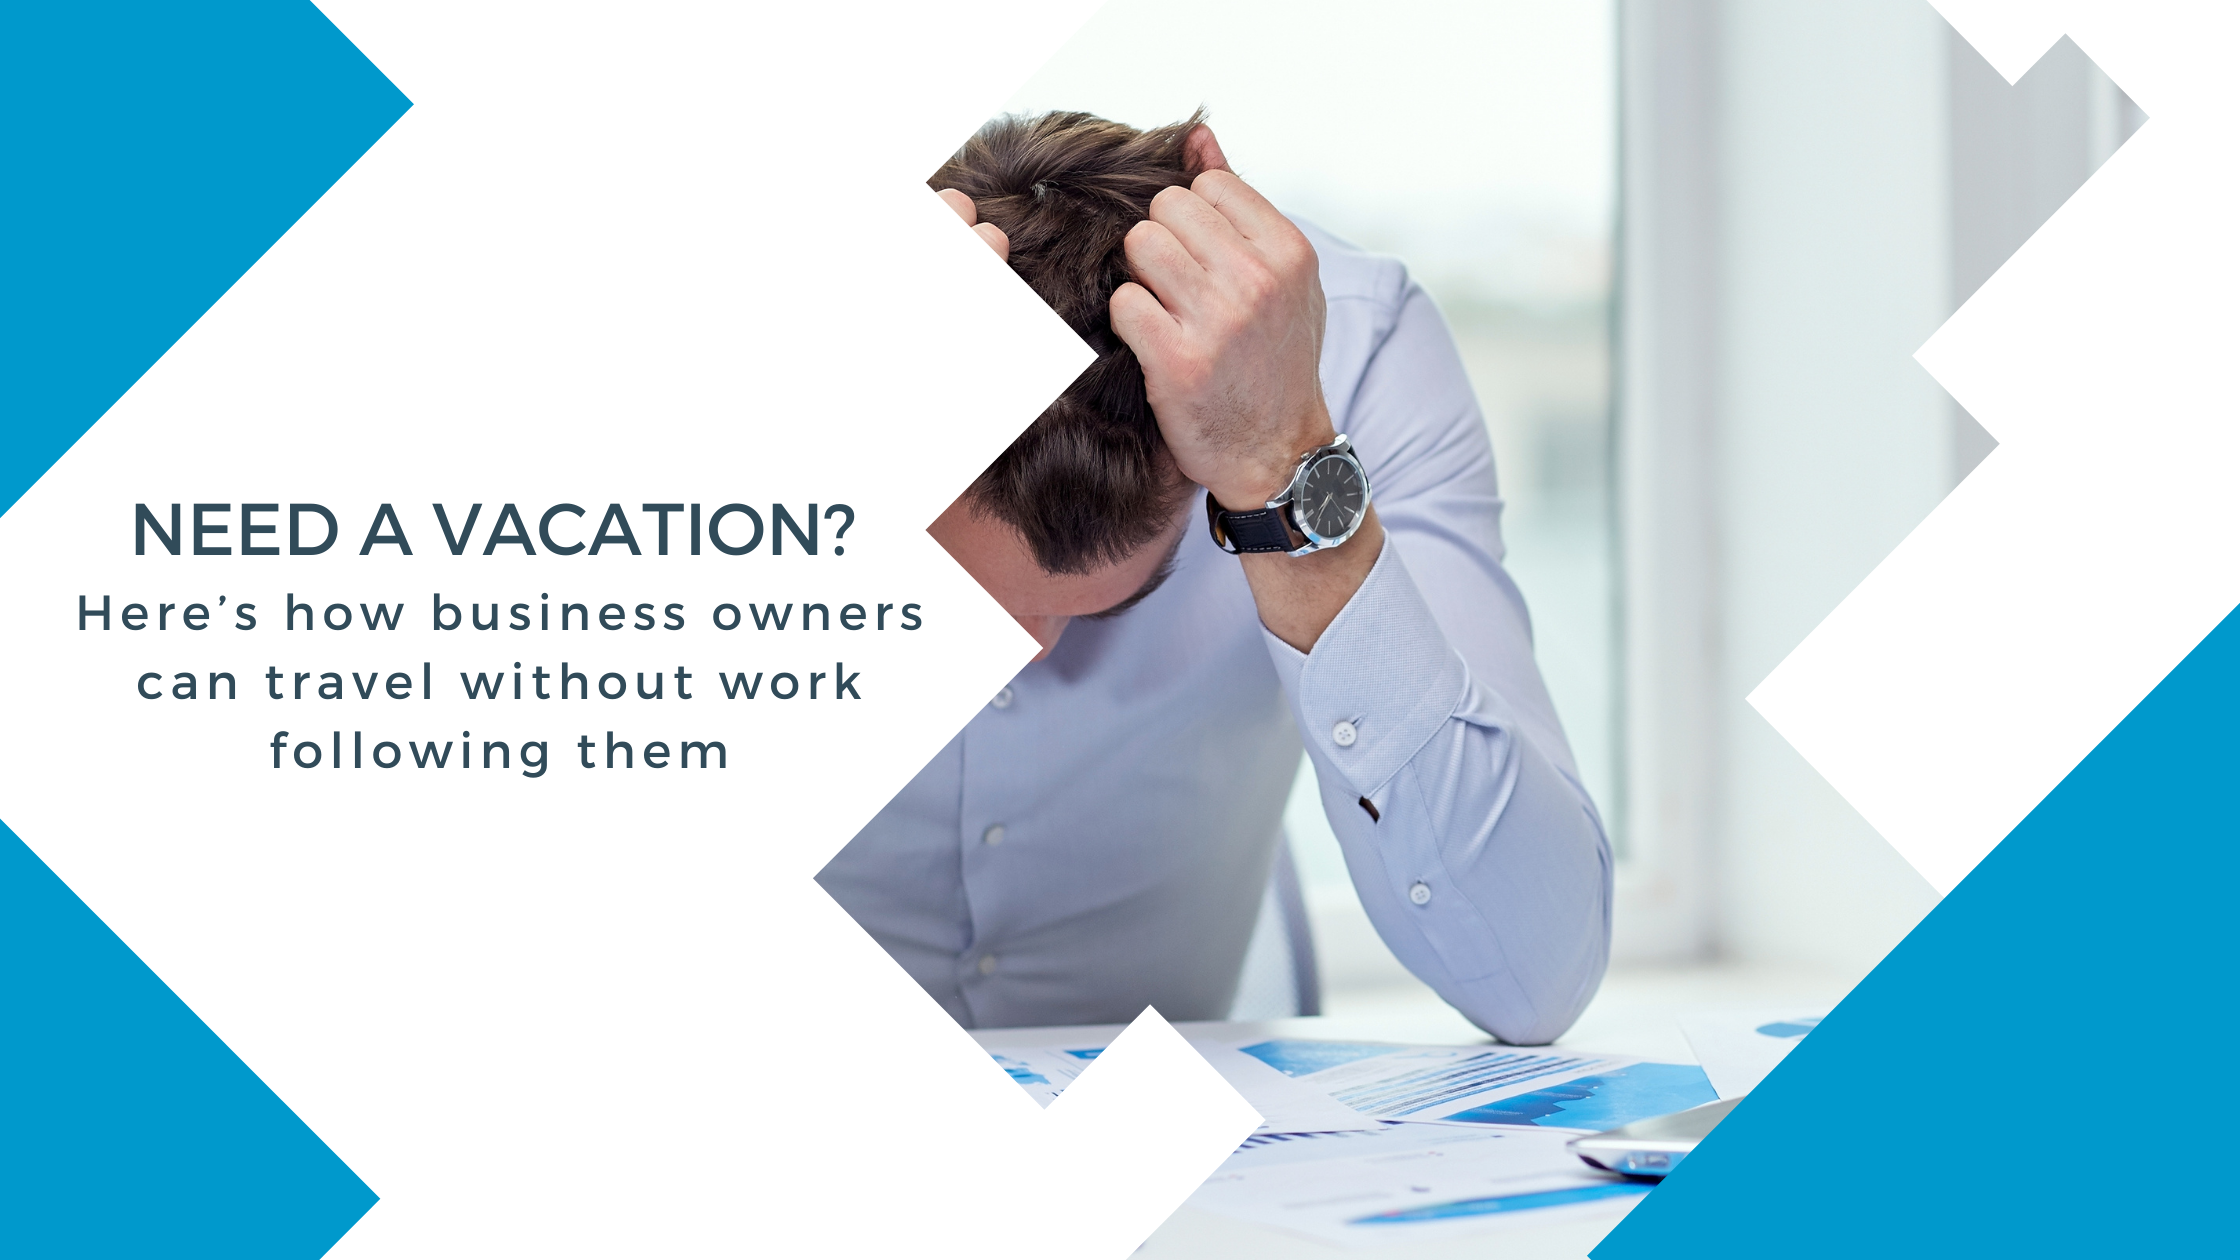 Tips on how business owners can prepare for a stress-free vacation that doesn't include work